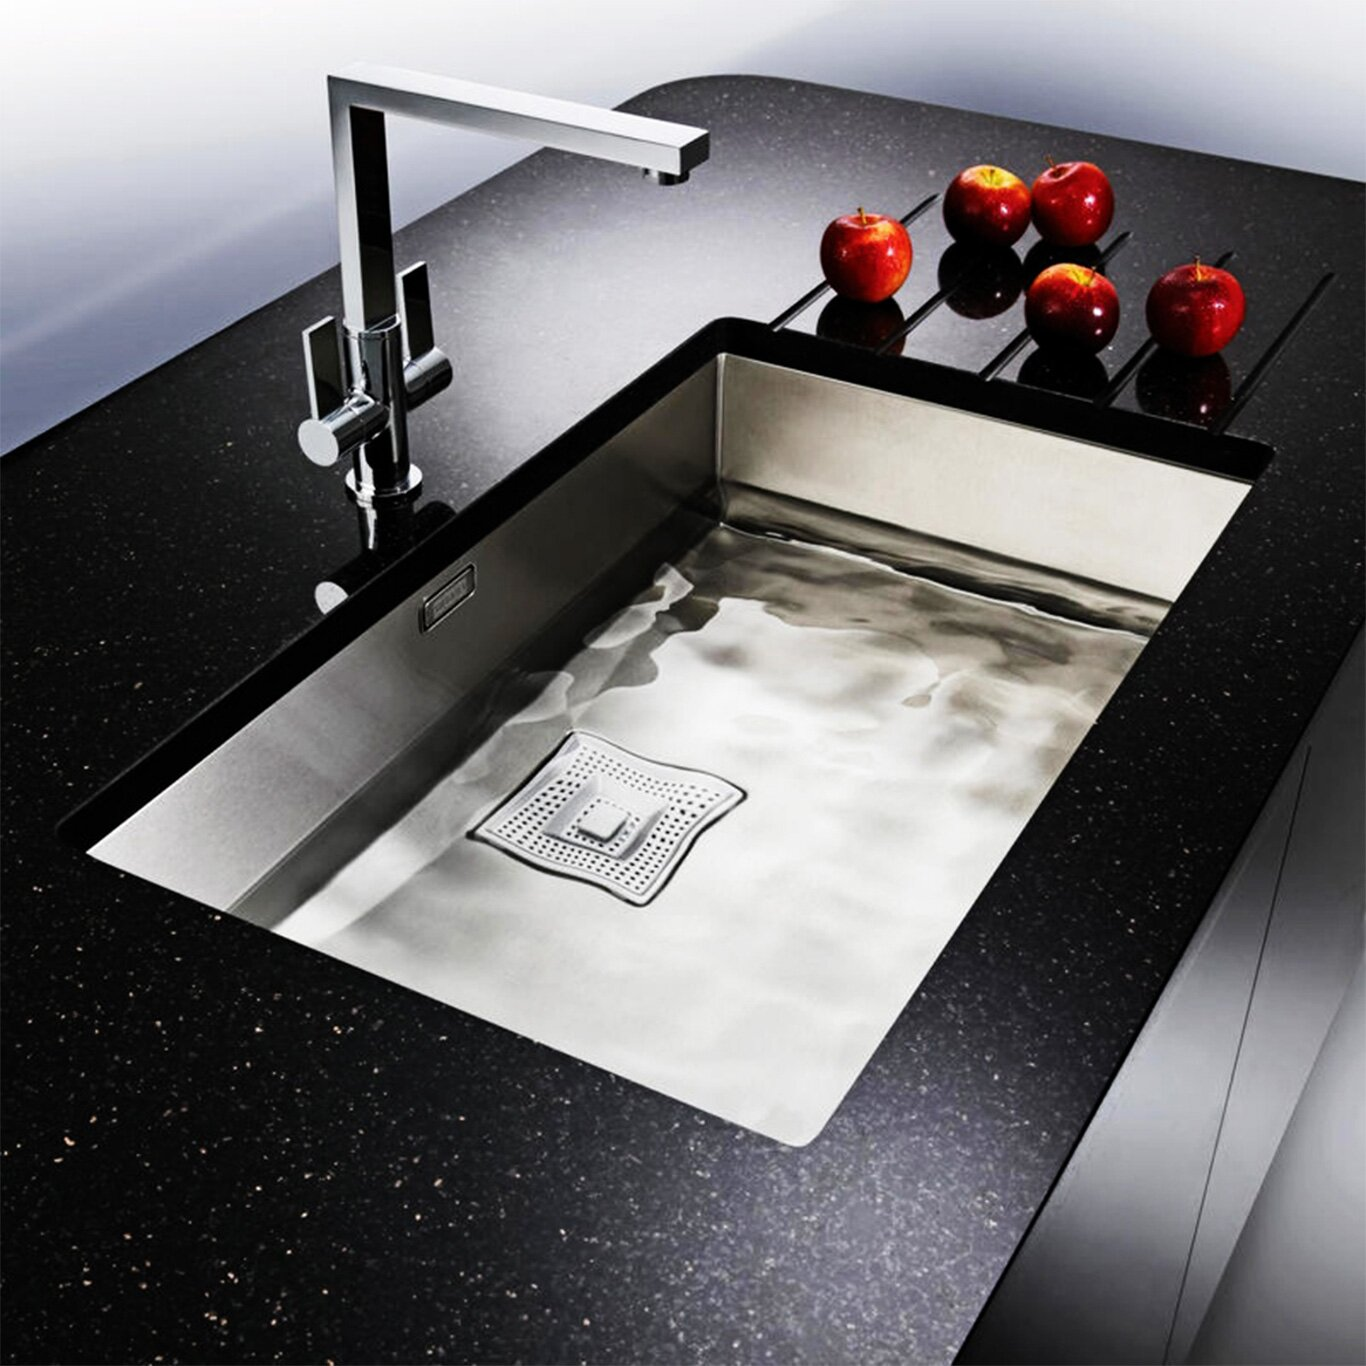 Kitchen Sinks Stainless Steel | Kitchen Sinks Stainless Steel | Steel Kitchen Sinks